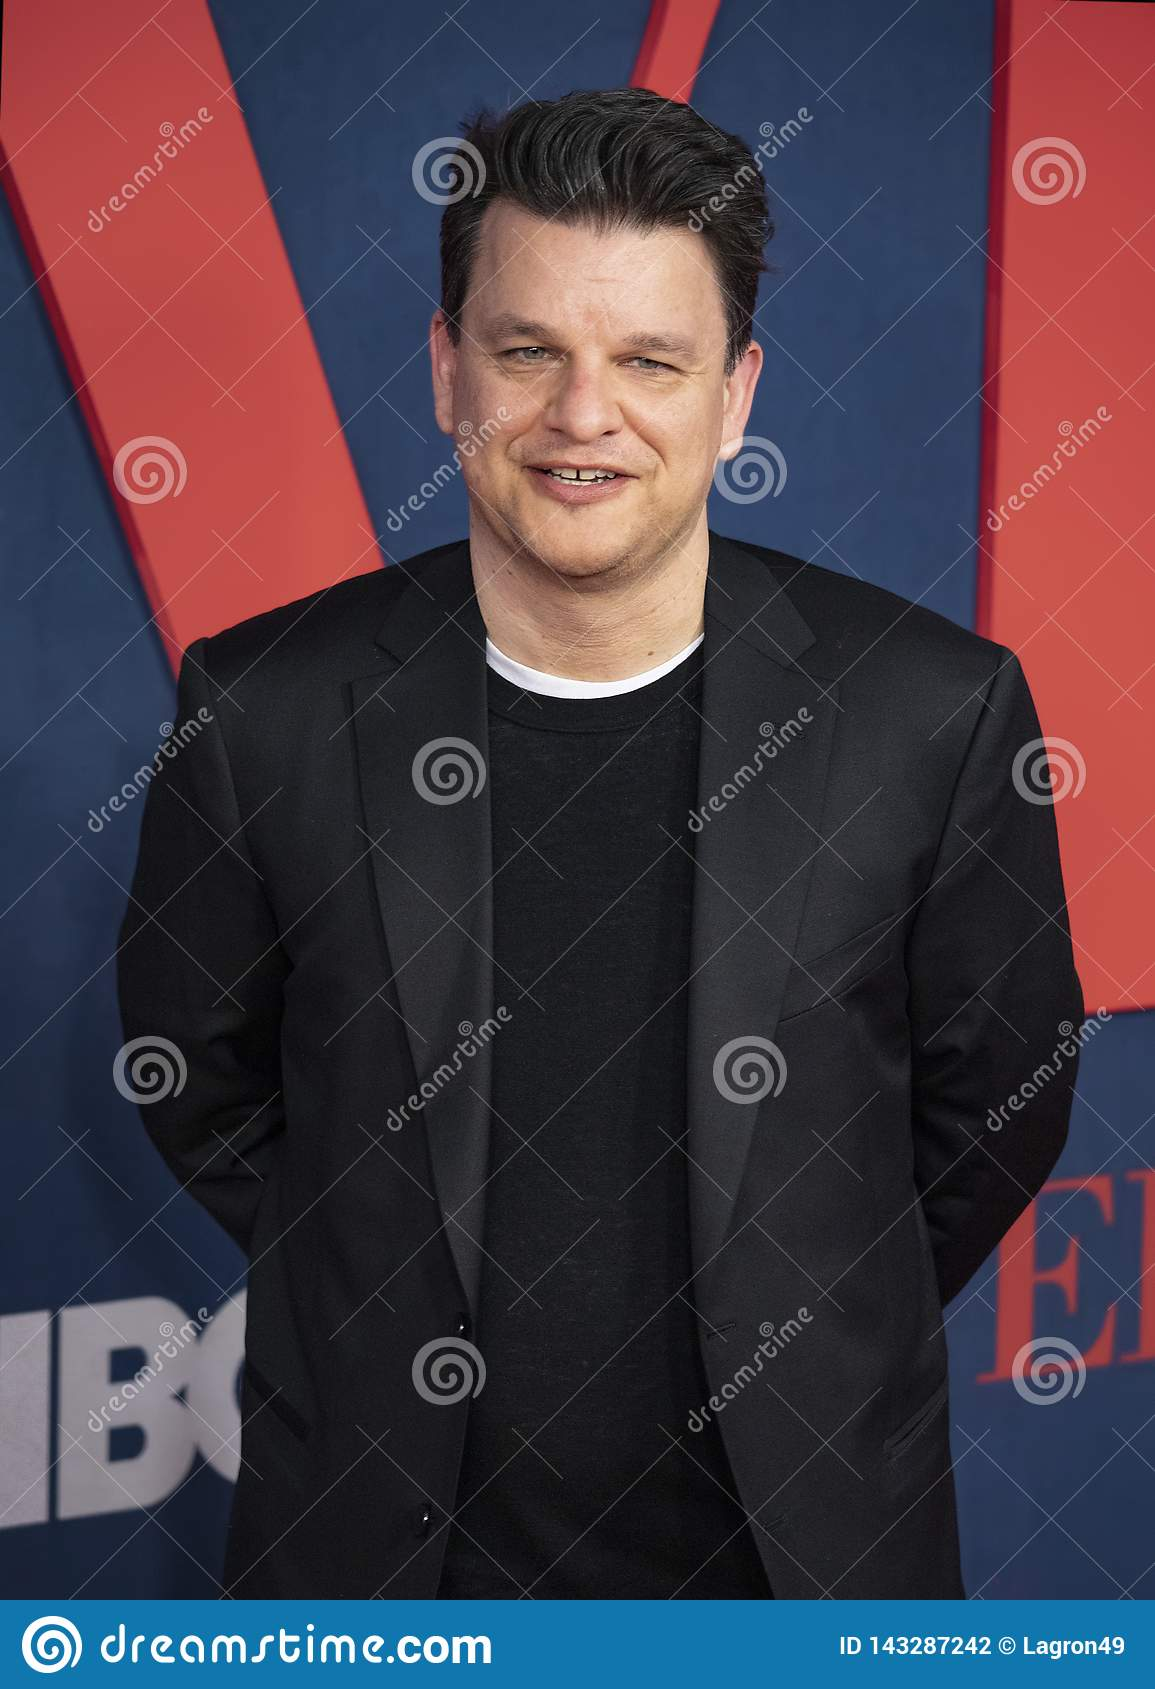 Alex Gregory At The Premiere Of Final Season Of VEEP